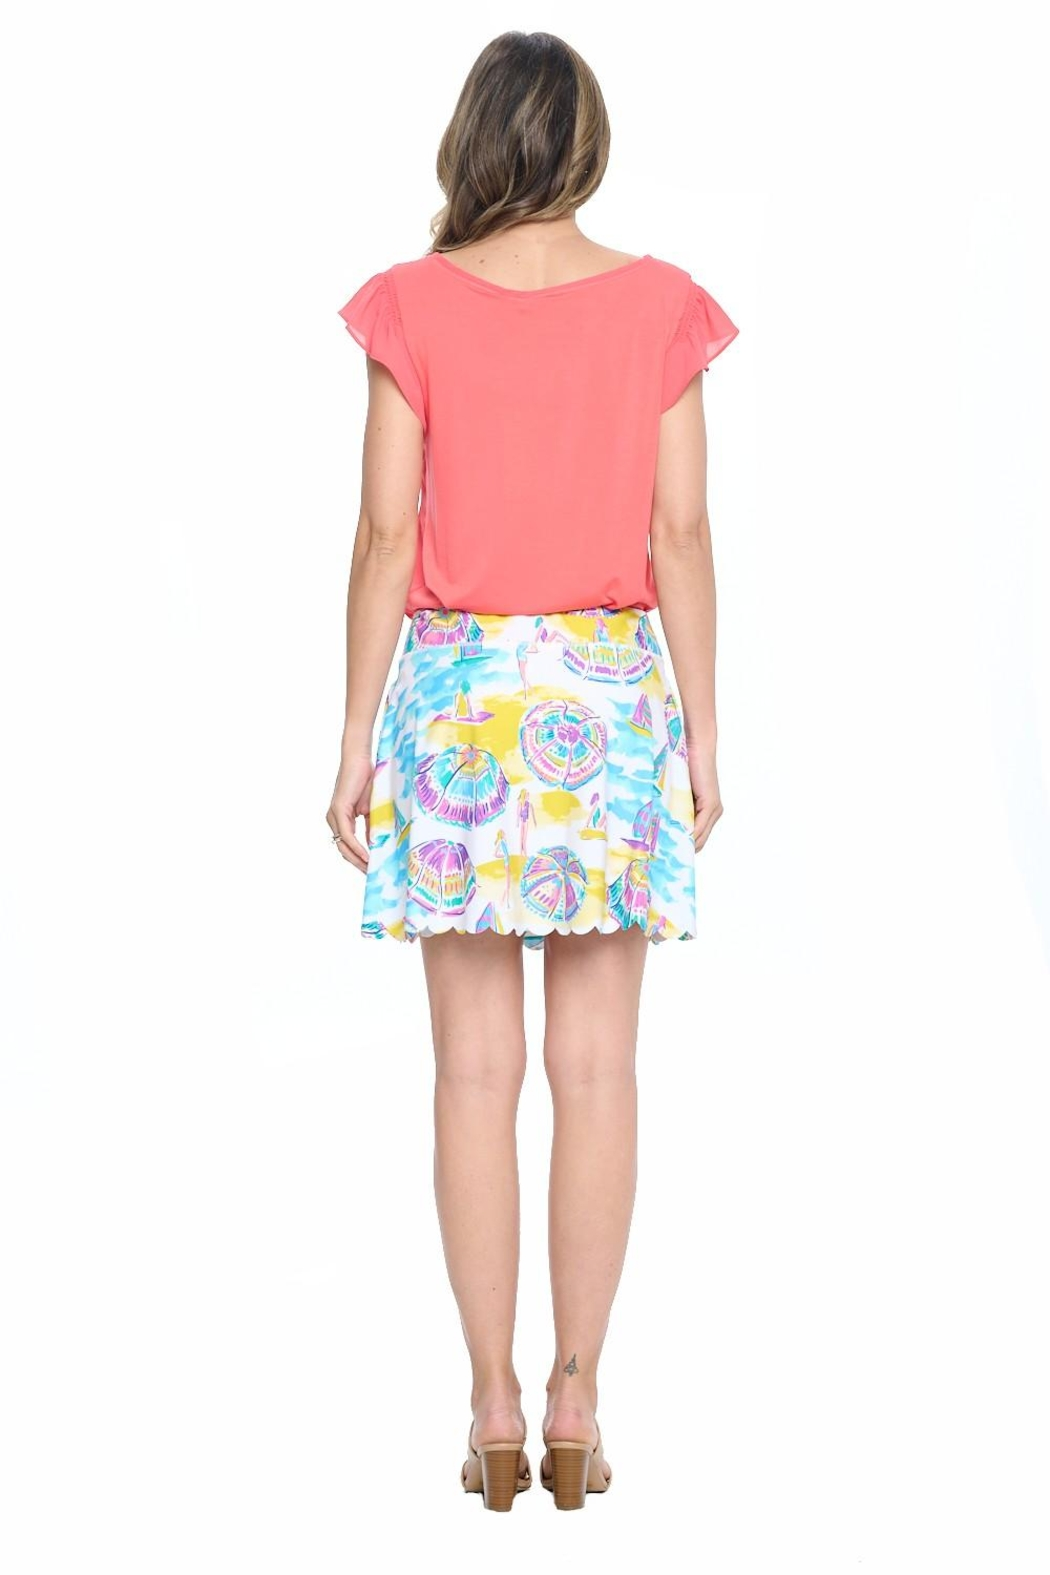 Aryeh White Scalloped Skort - Side Cropped Image